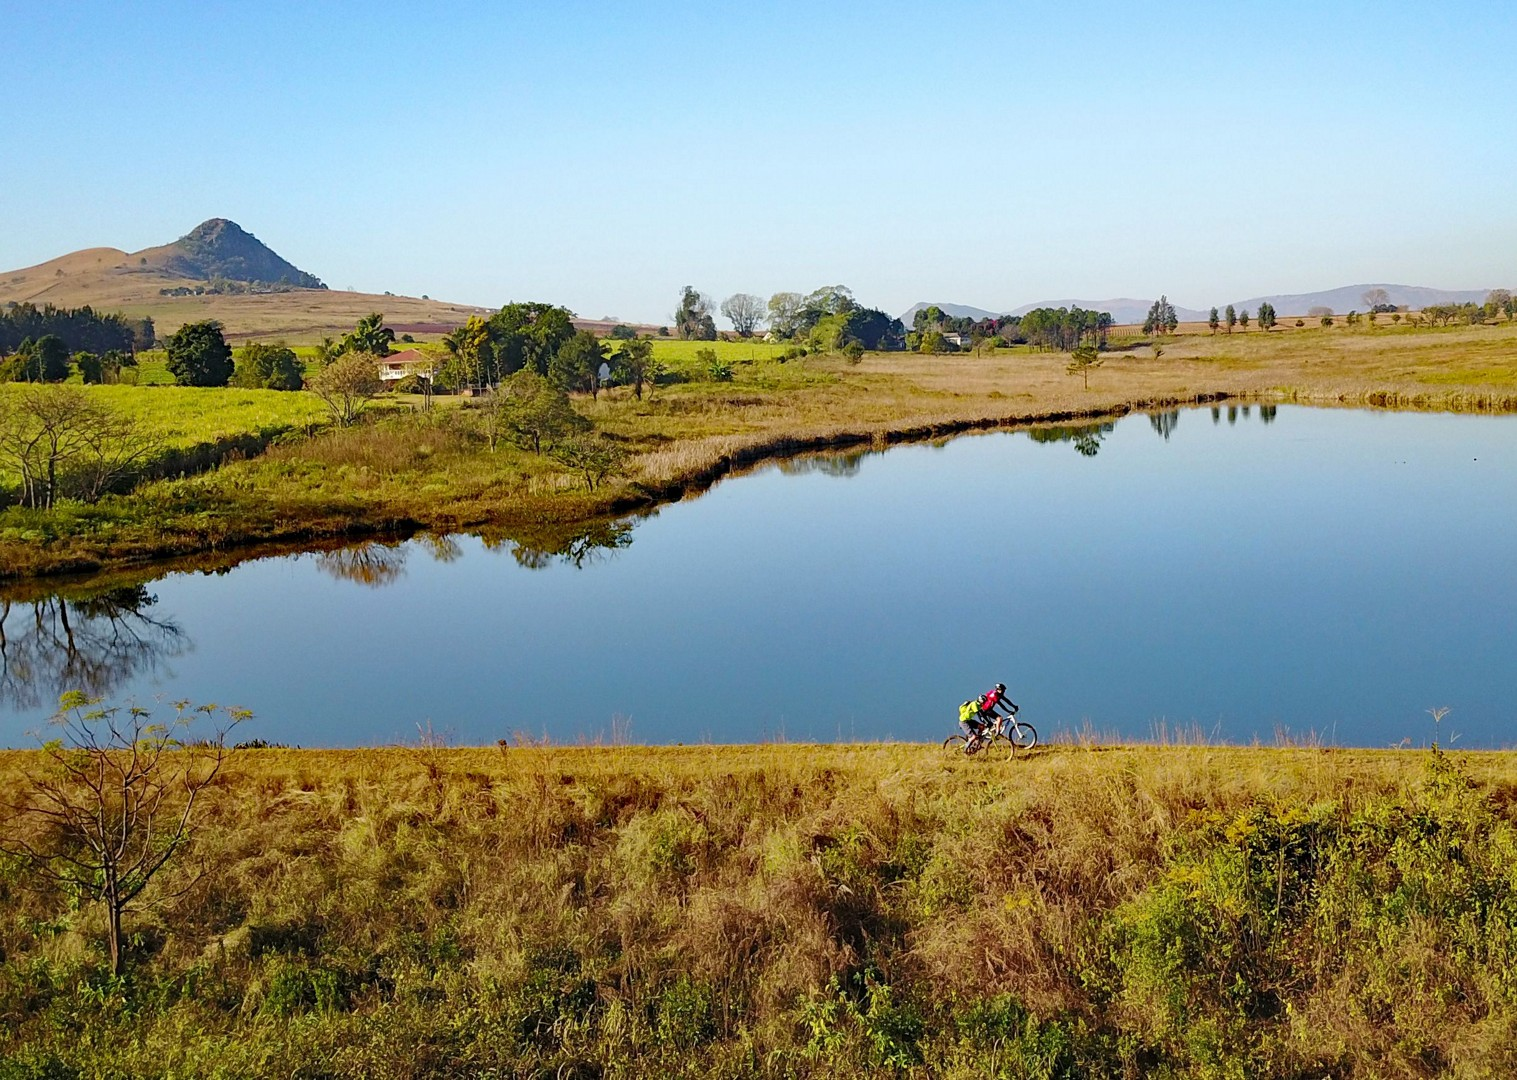 Riding over the dam.jpg - Eswatini (Swaziland) - Cycling Safari - Cycling Adventures